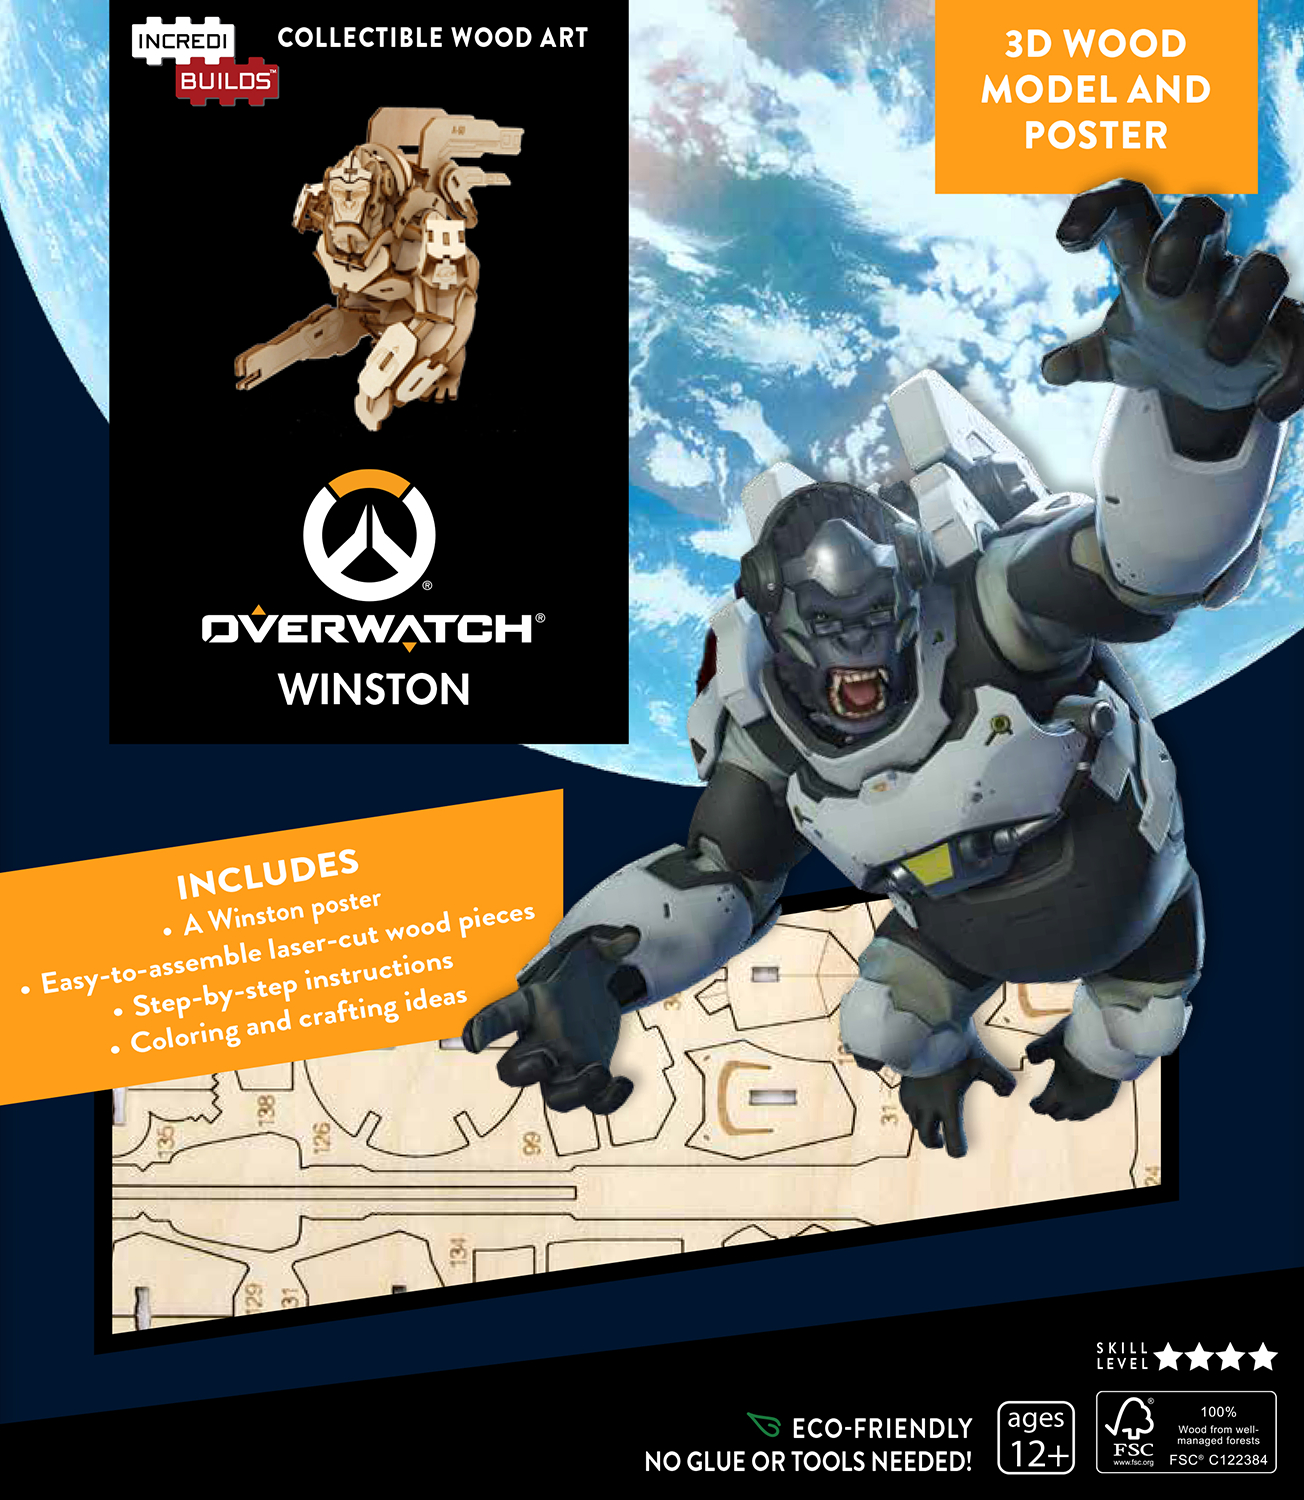 INCREDIBUILDS OW WINSTON 3D WOOD MODEL & POSTER